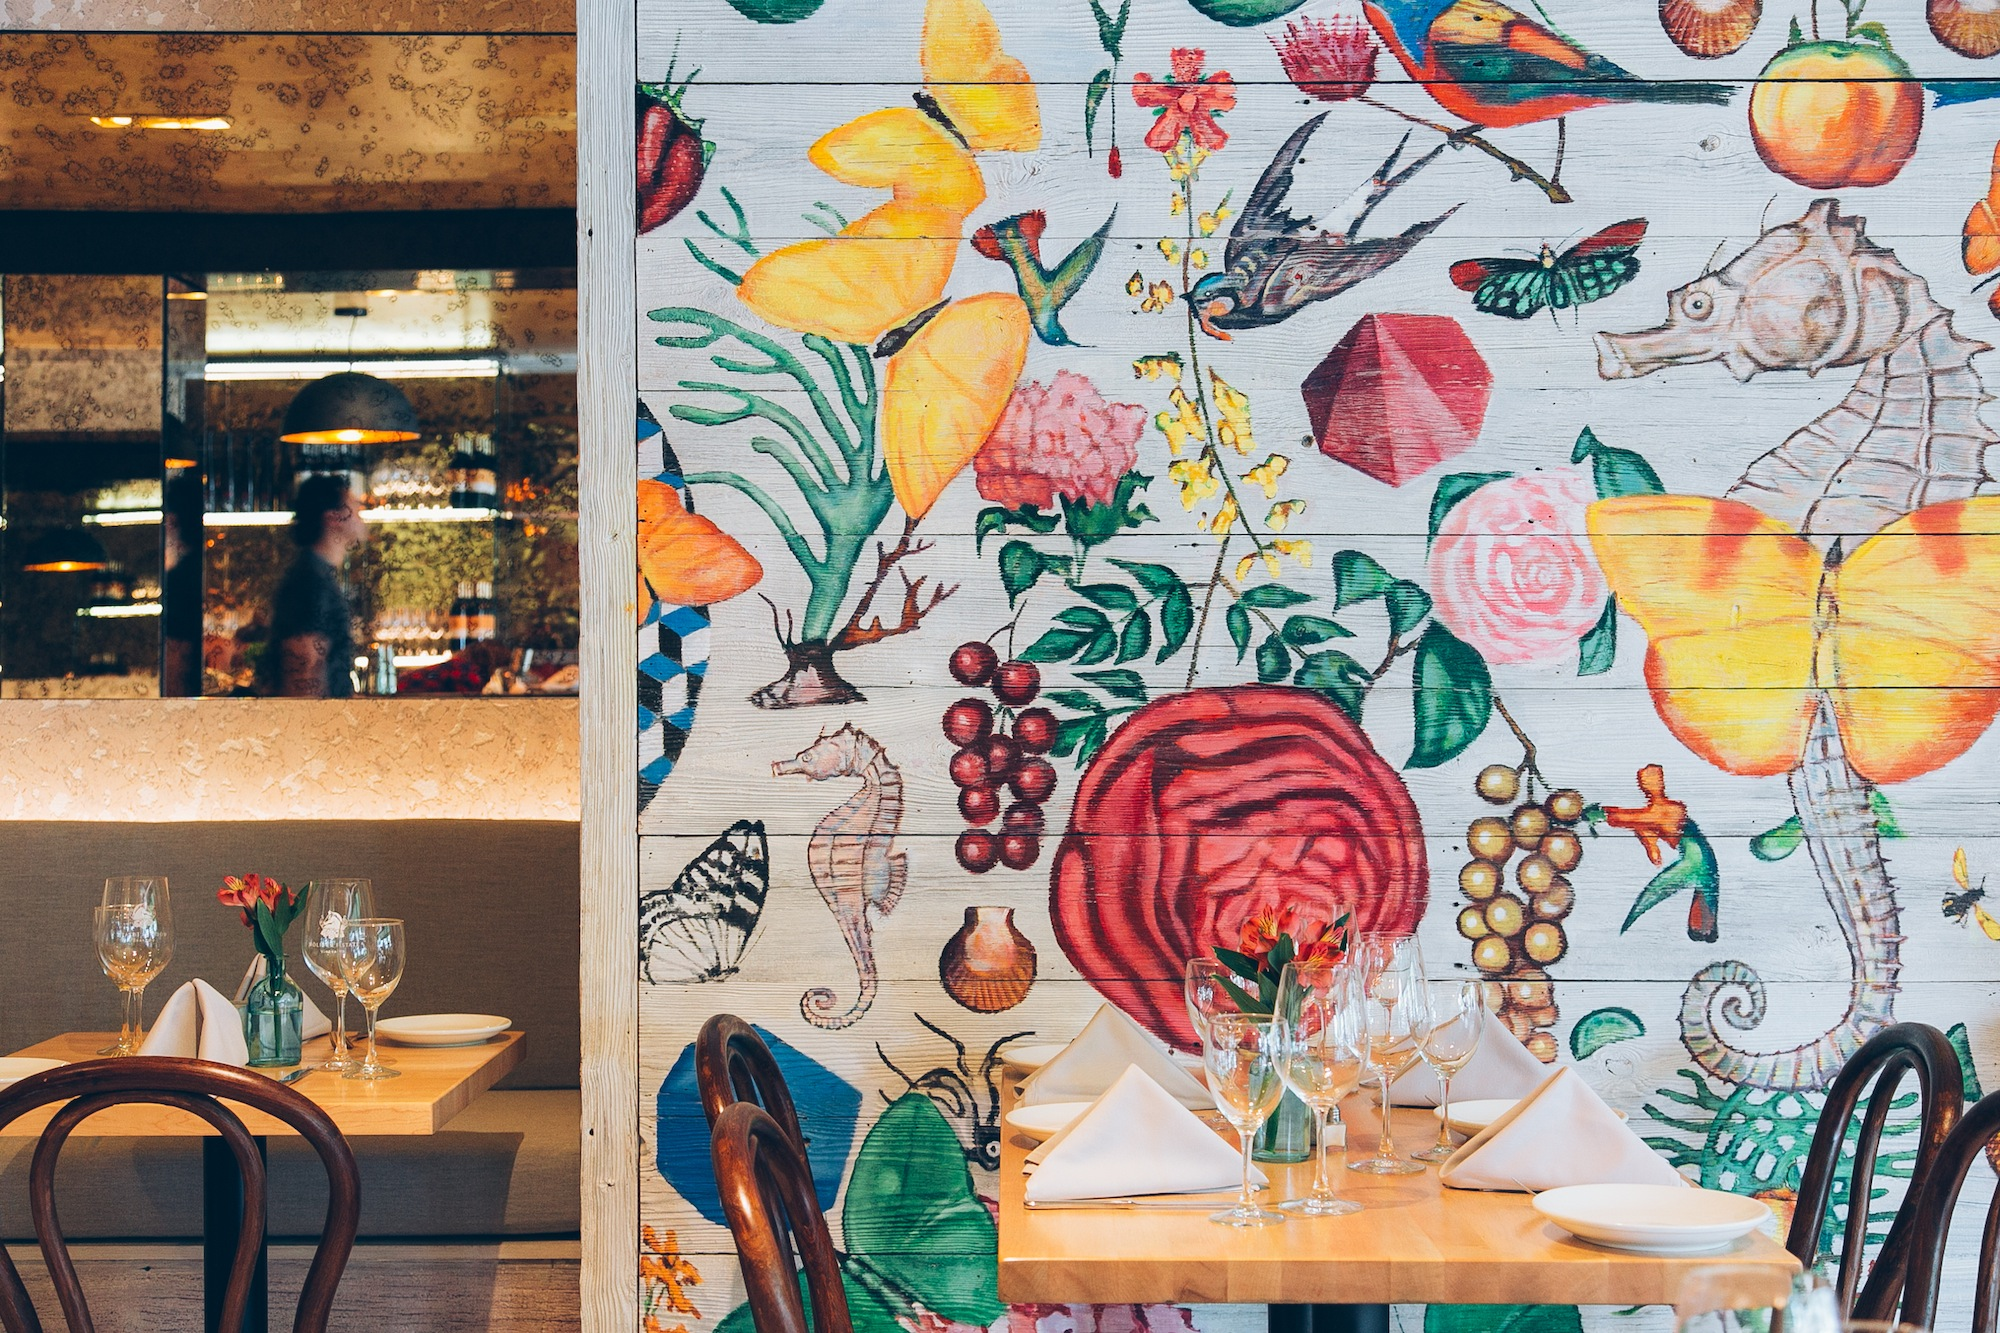 A mural inside Wölffer Kitchen helps to give the restaurant a bohemian vibe. image: conor harrigan